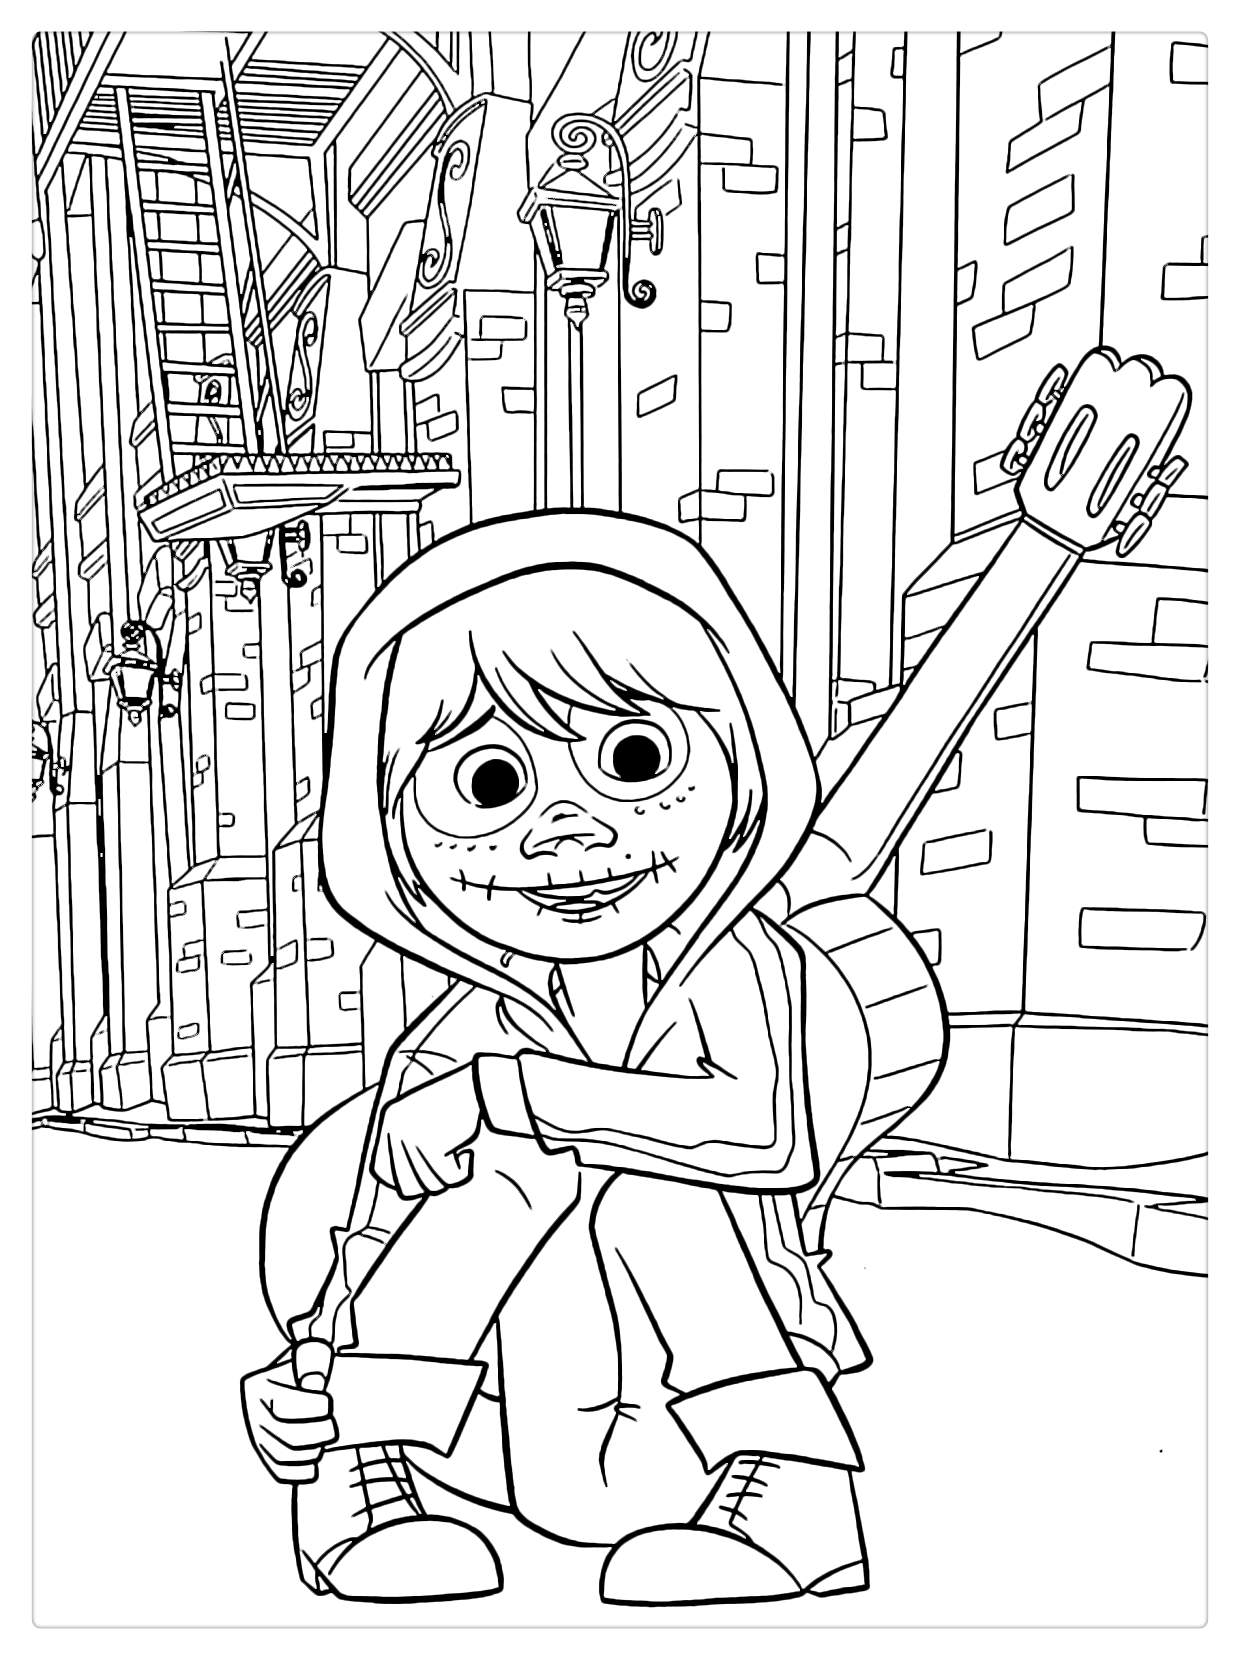 Coco Coloring Pages Miguel Lineart Free Printable